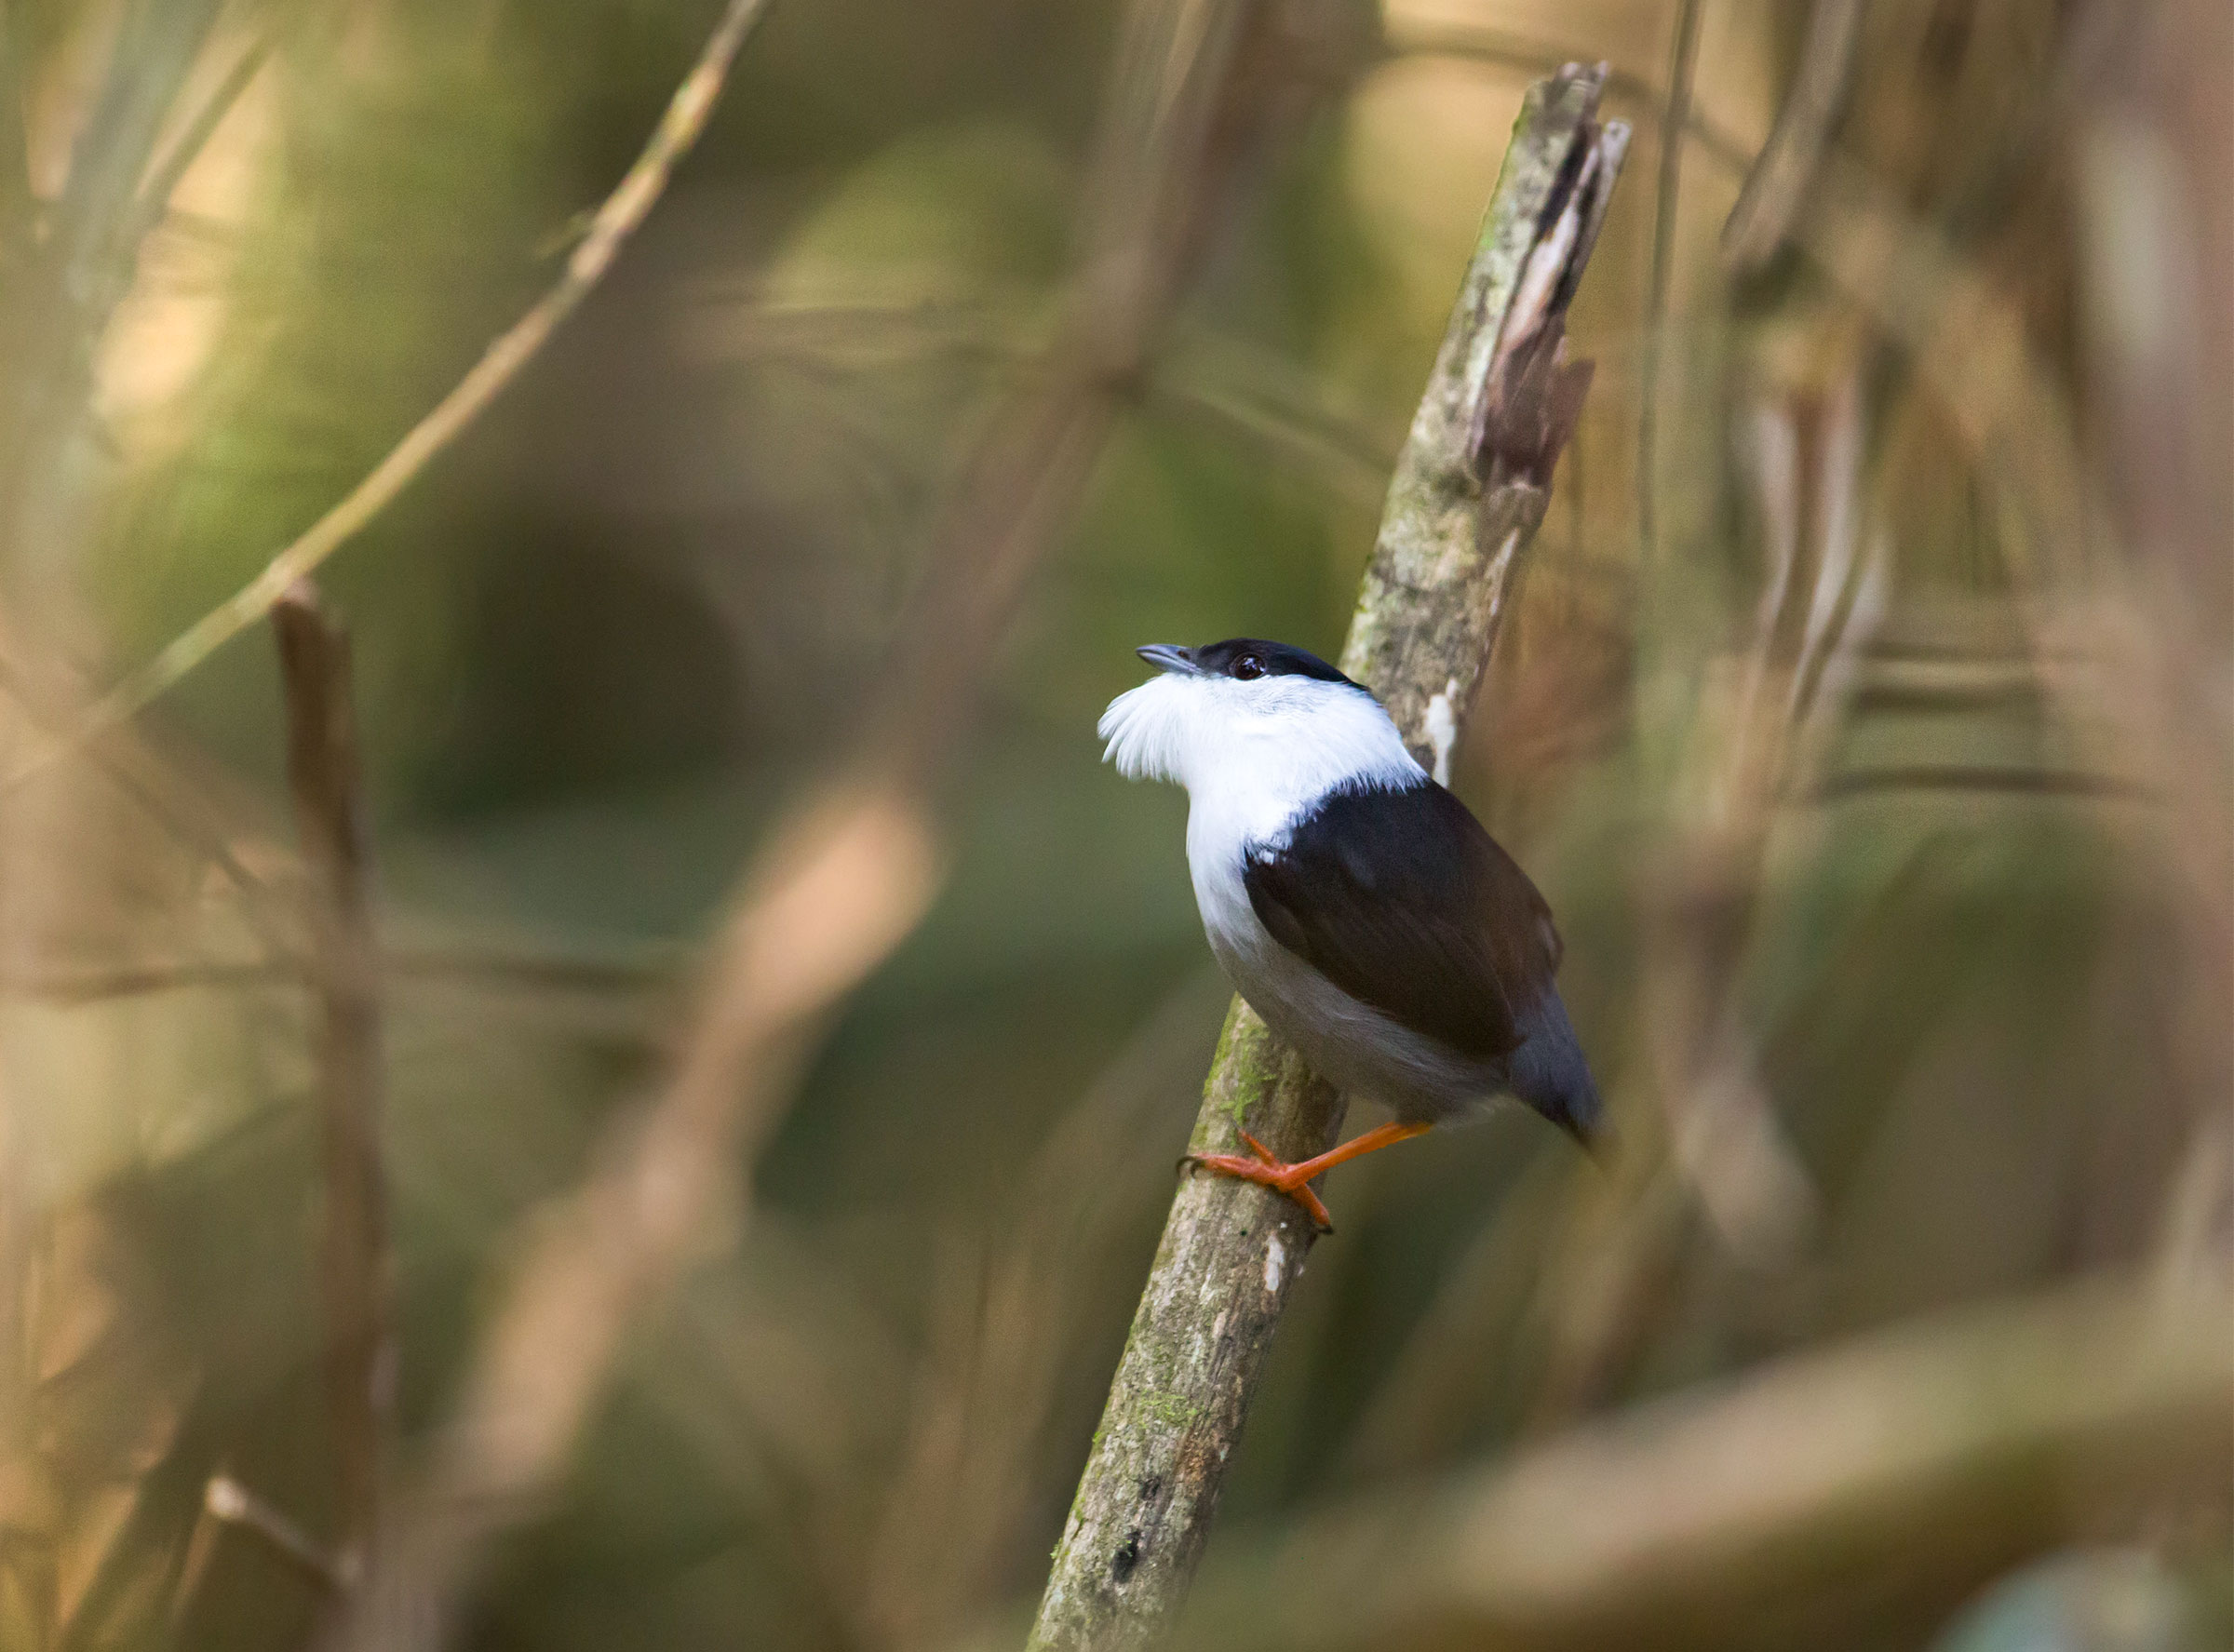 When they're feeling lekky, White-bearded Manakins gather in groups to snap, crackle, and pop their feathers. National Geographic Creative/Alamy